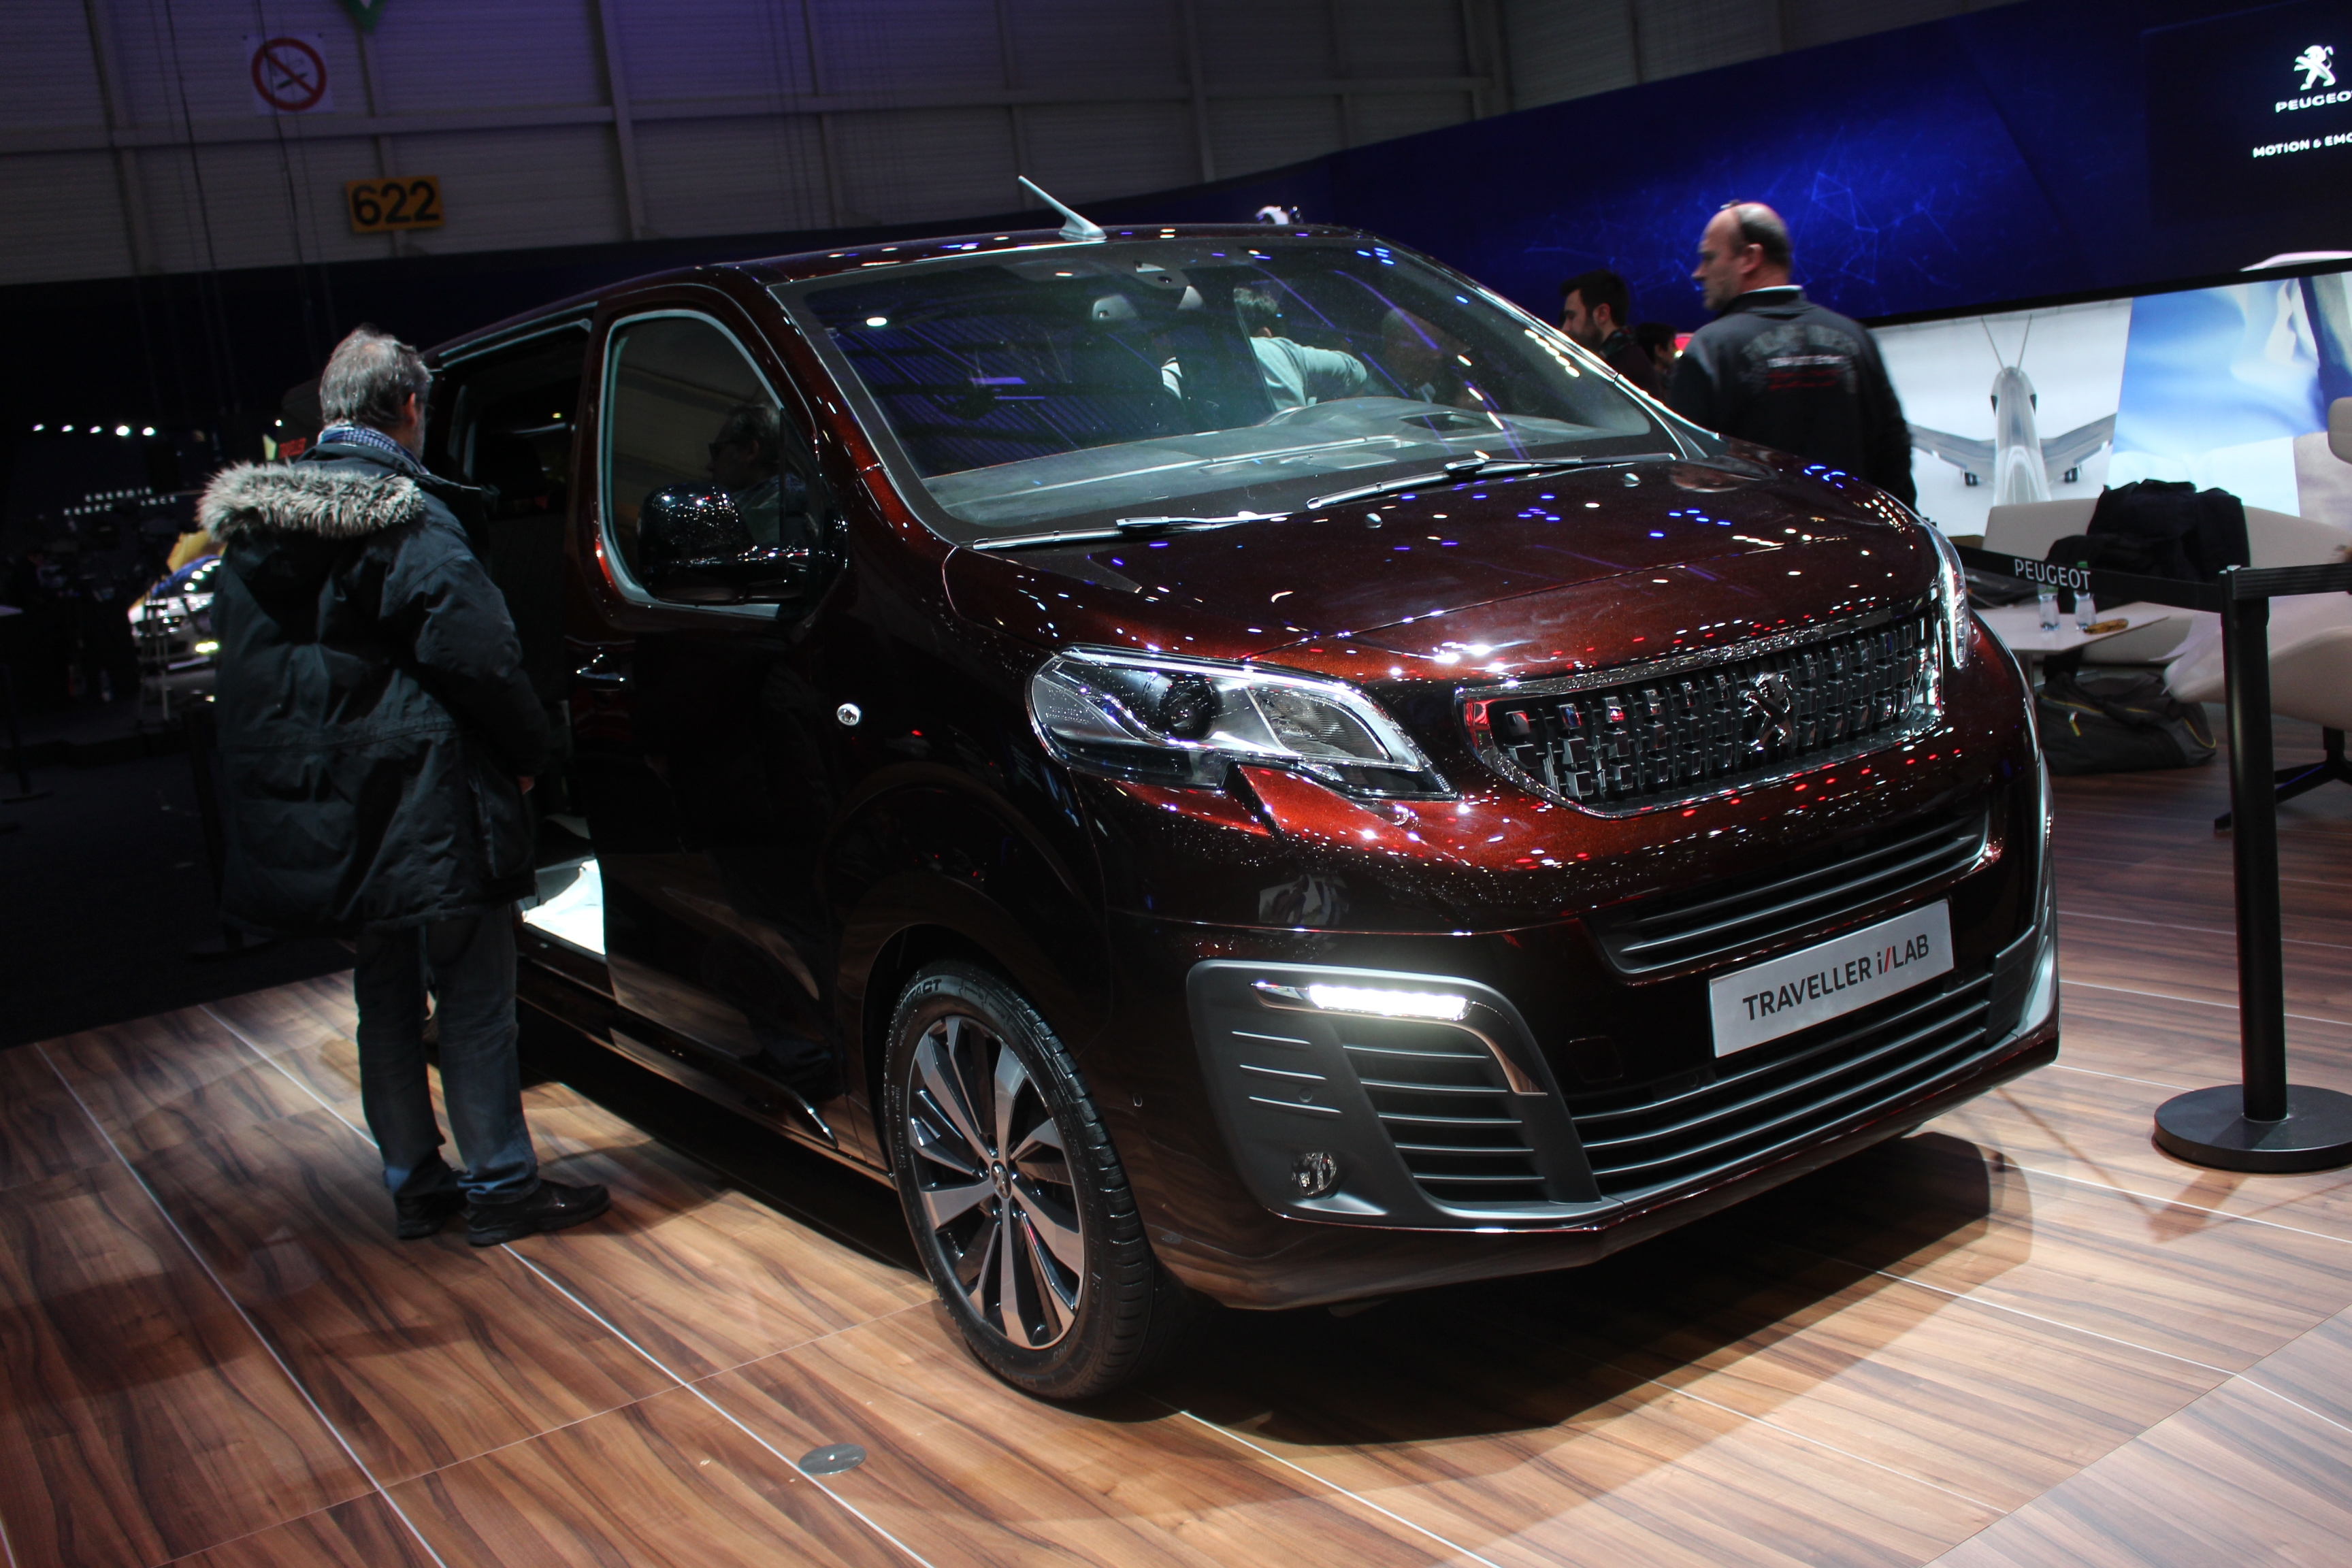 Peugeot traveller i lab concept salon roulant en direct du salon de gen ve - Concept salon de the ...